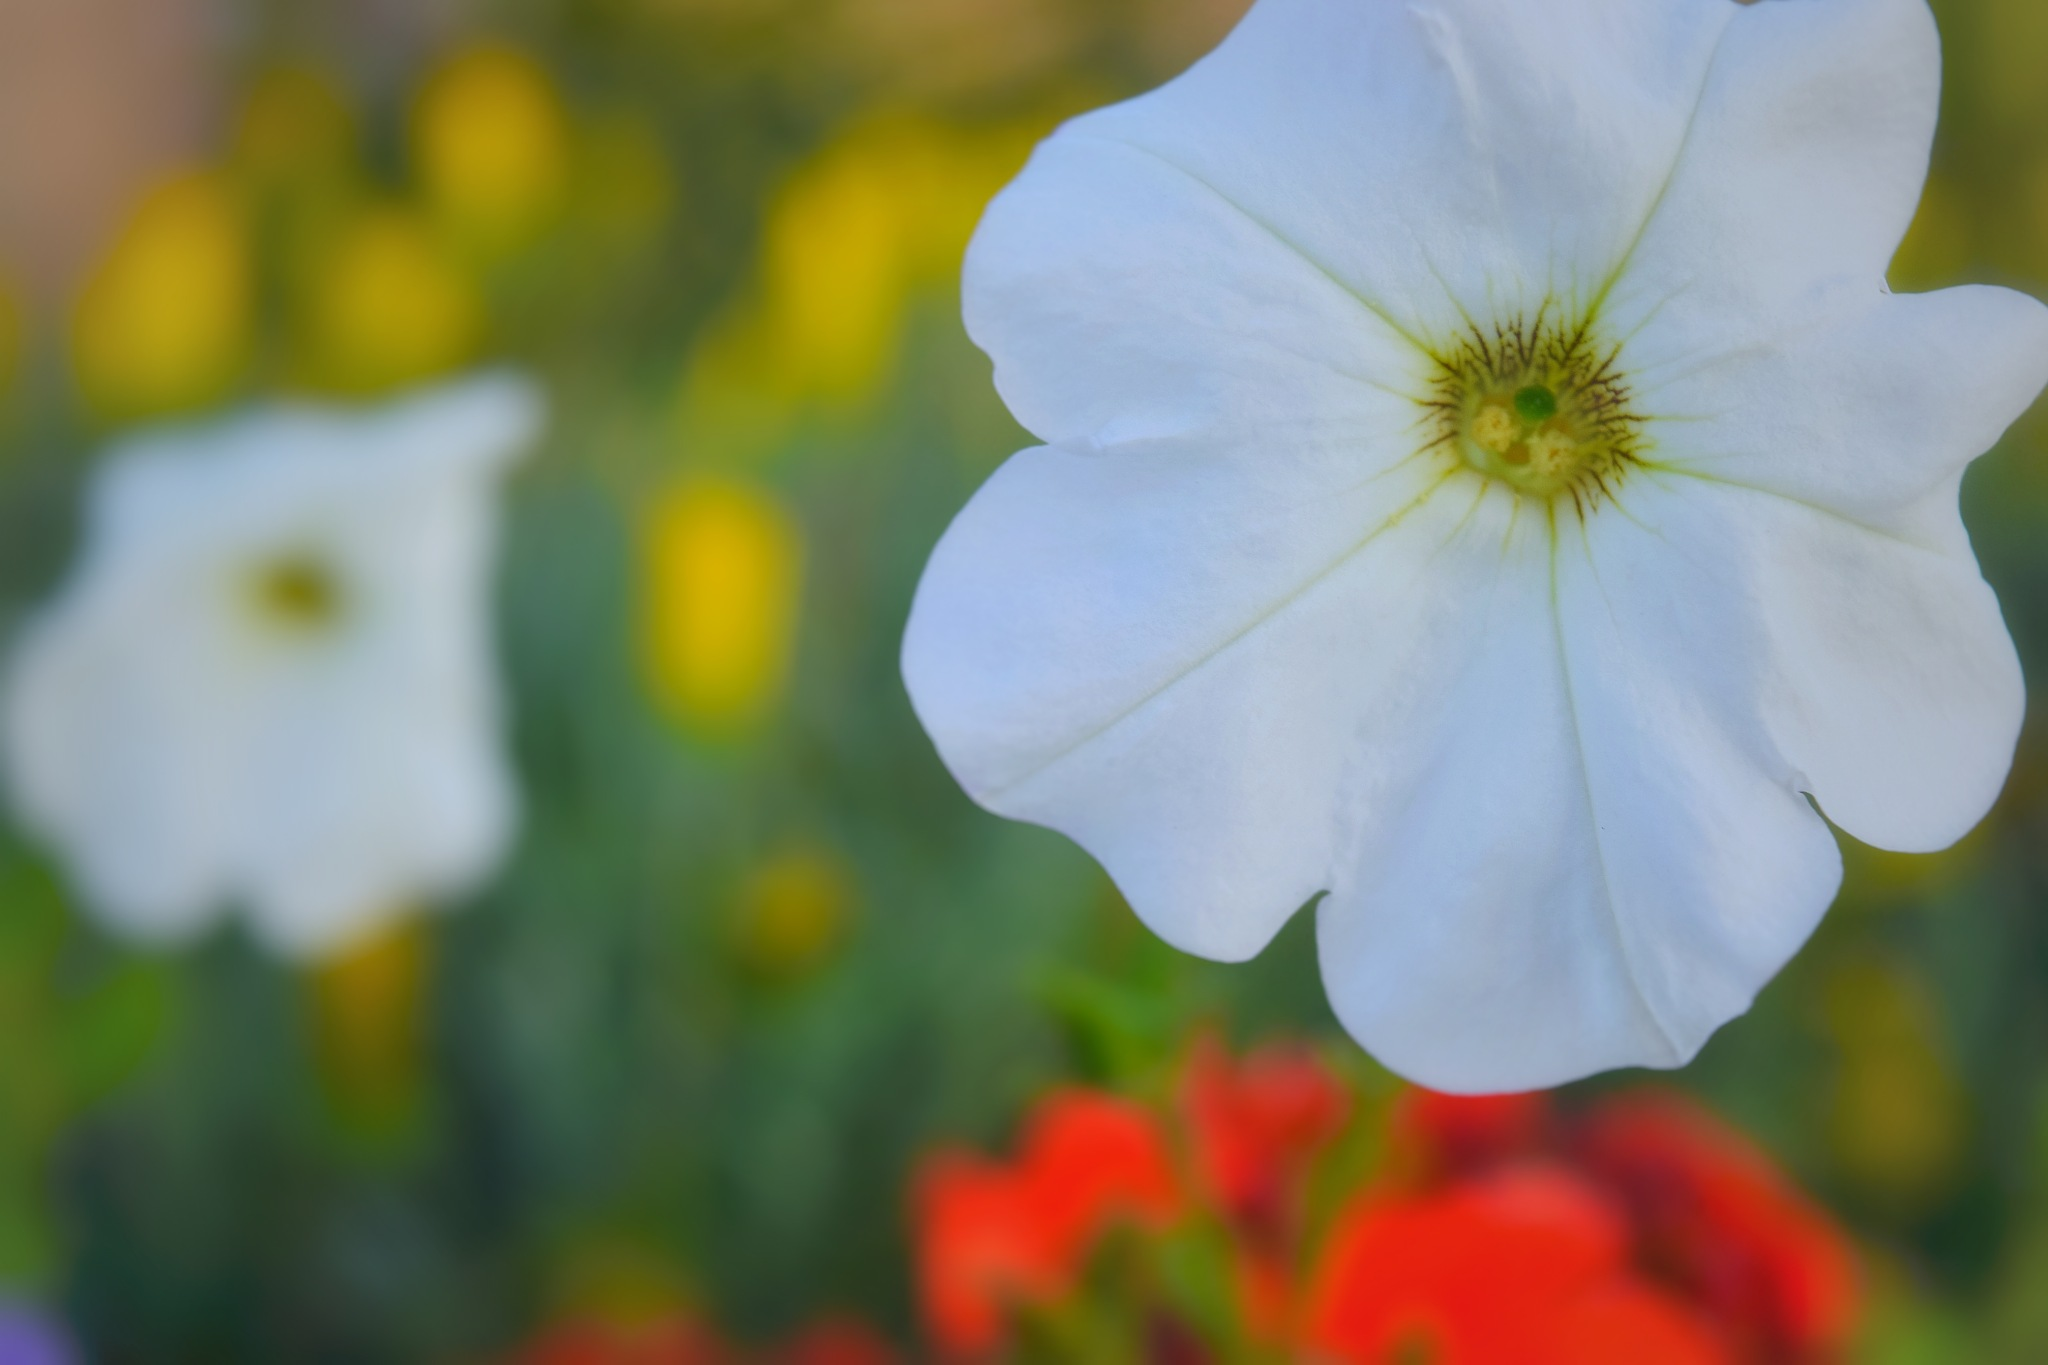 The White Flower by Mohamed Maged Mohamed Fathy